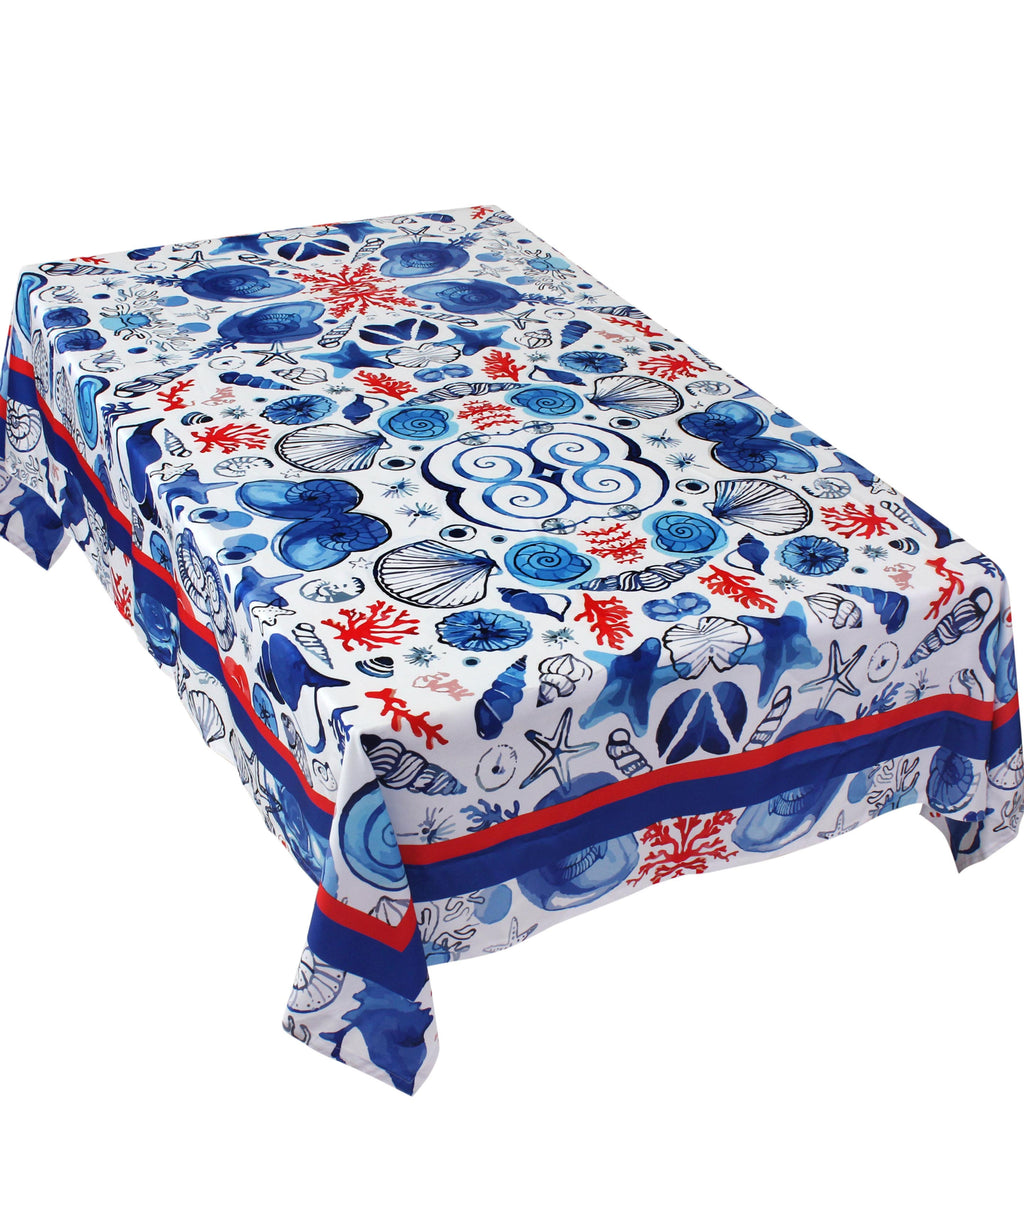 The Ocean Life Table Cover